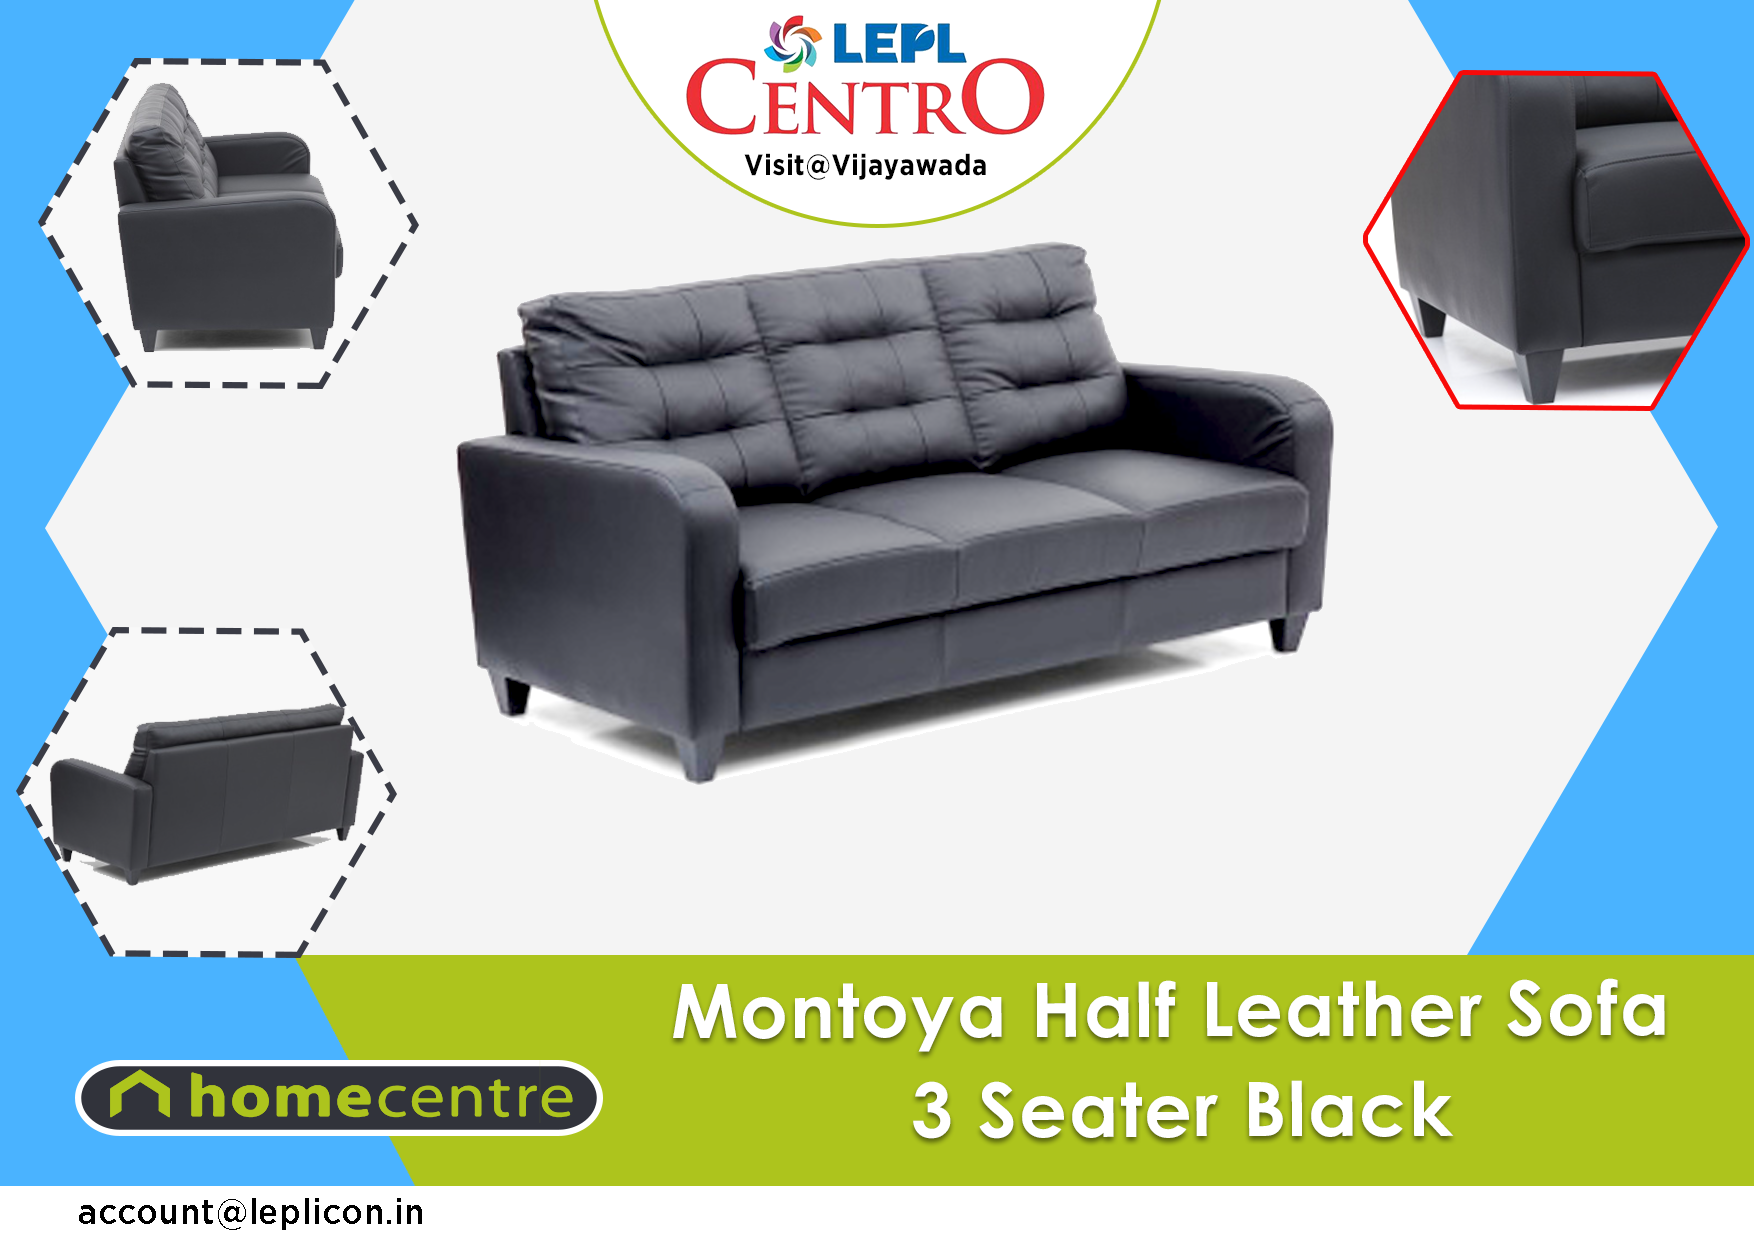 Buy Montoya Half Leather Sofa That Will Add Life To Any Part Of Your Home At Home Centre In Lepl Centro Vijayawada India Lea Leather Sofa Home Furniture Sofa